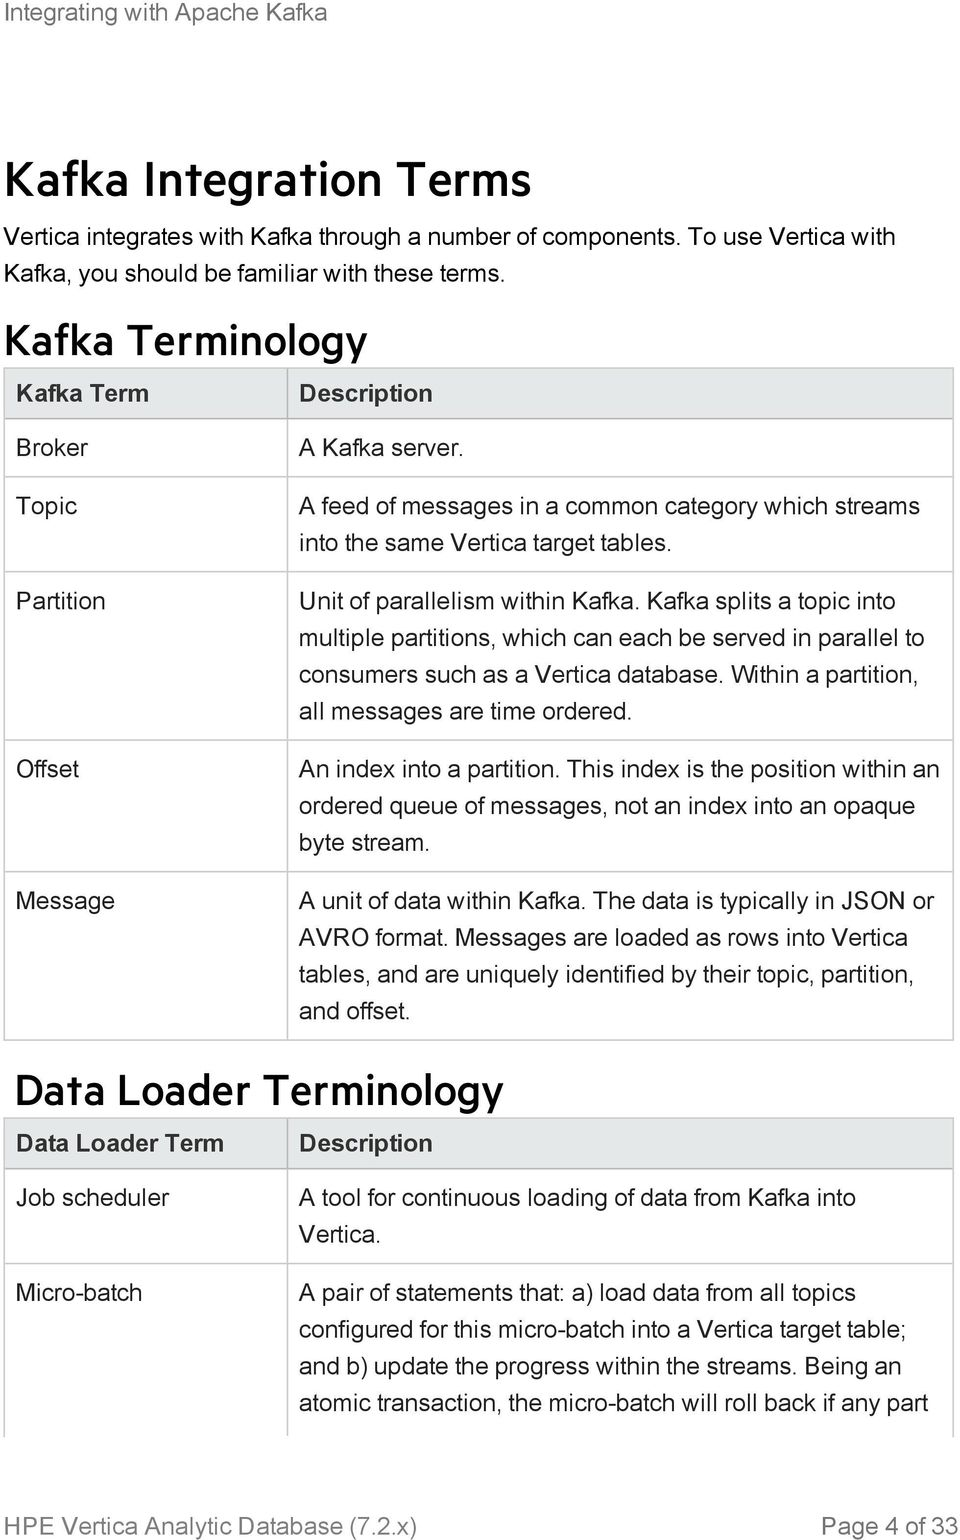 Integrating with Apache Kafka HPE Vertica Analytic Database